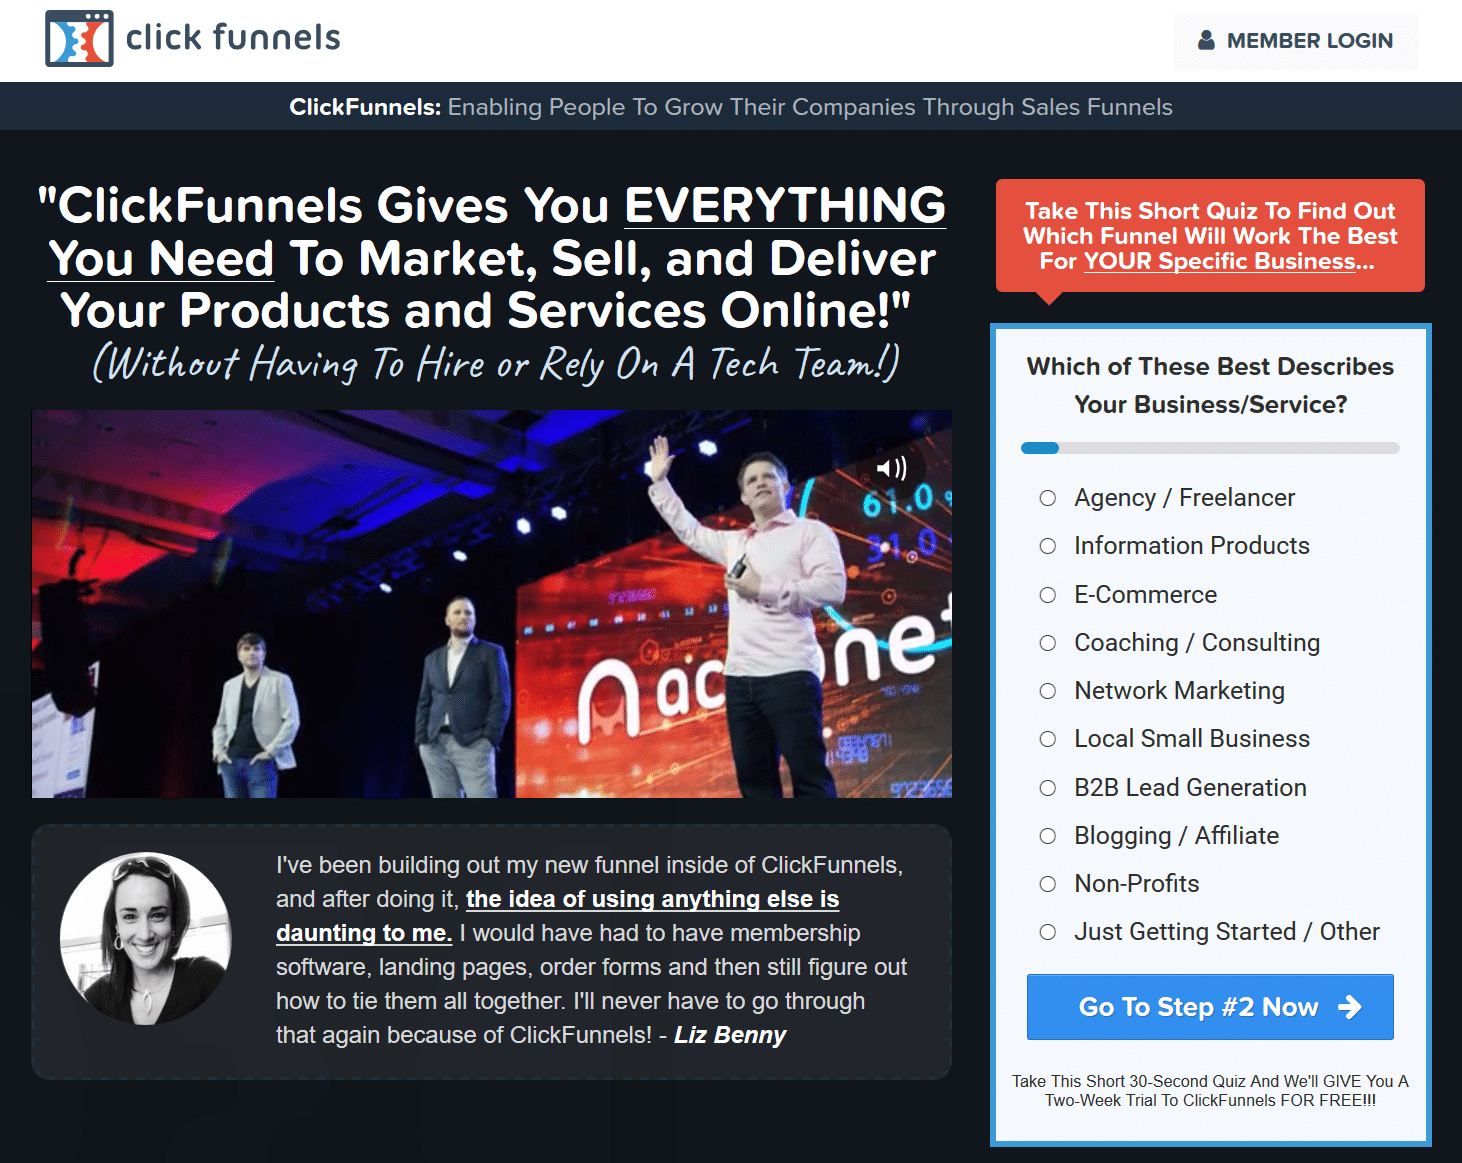 How To Add A Meta Tag To A Clickfunnels Landing Page?